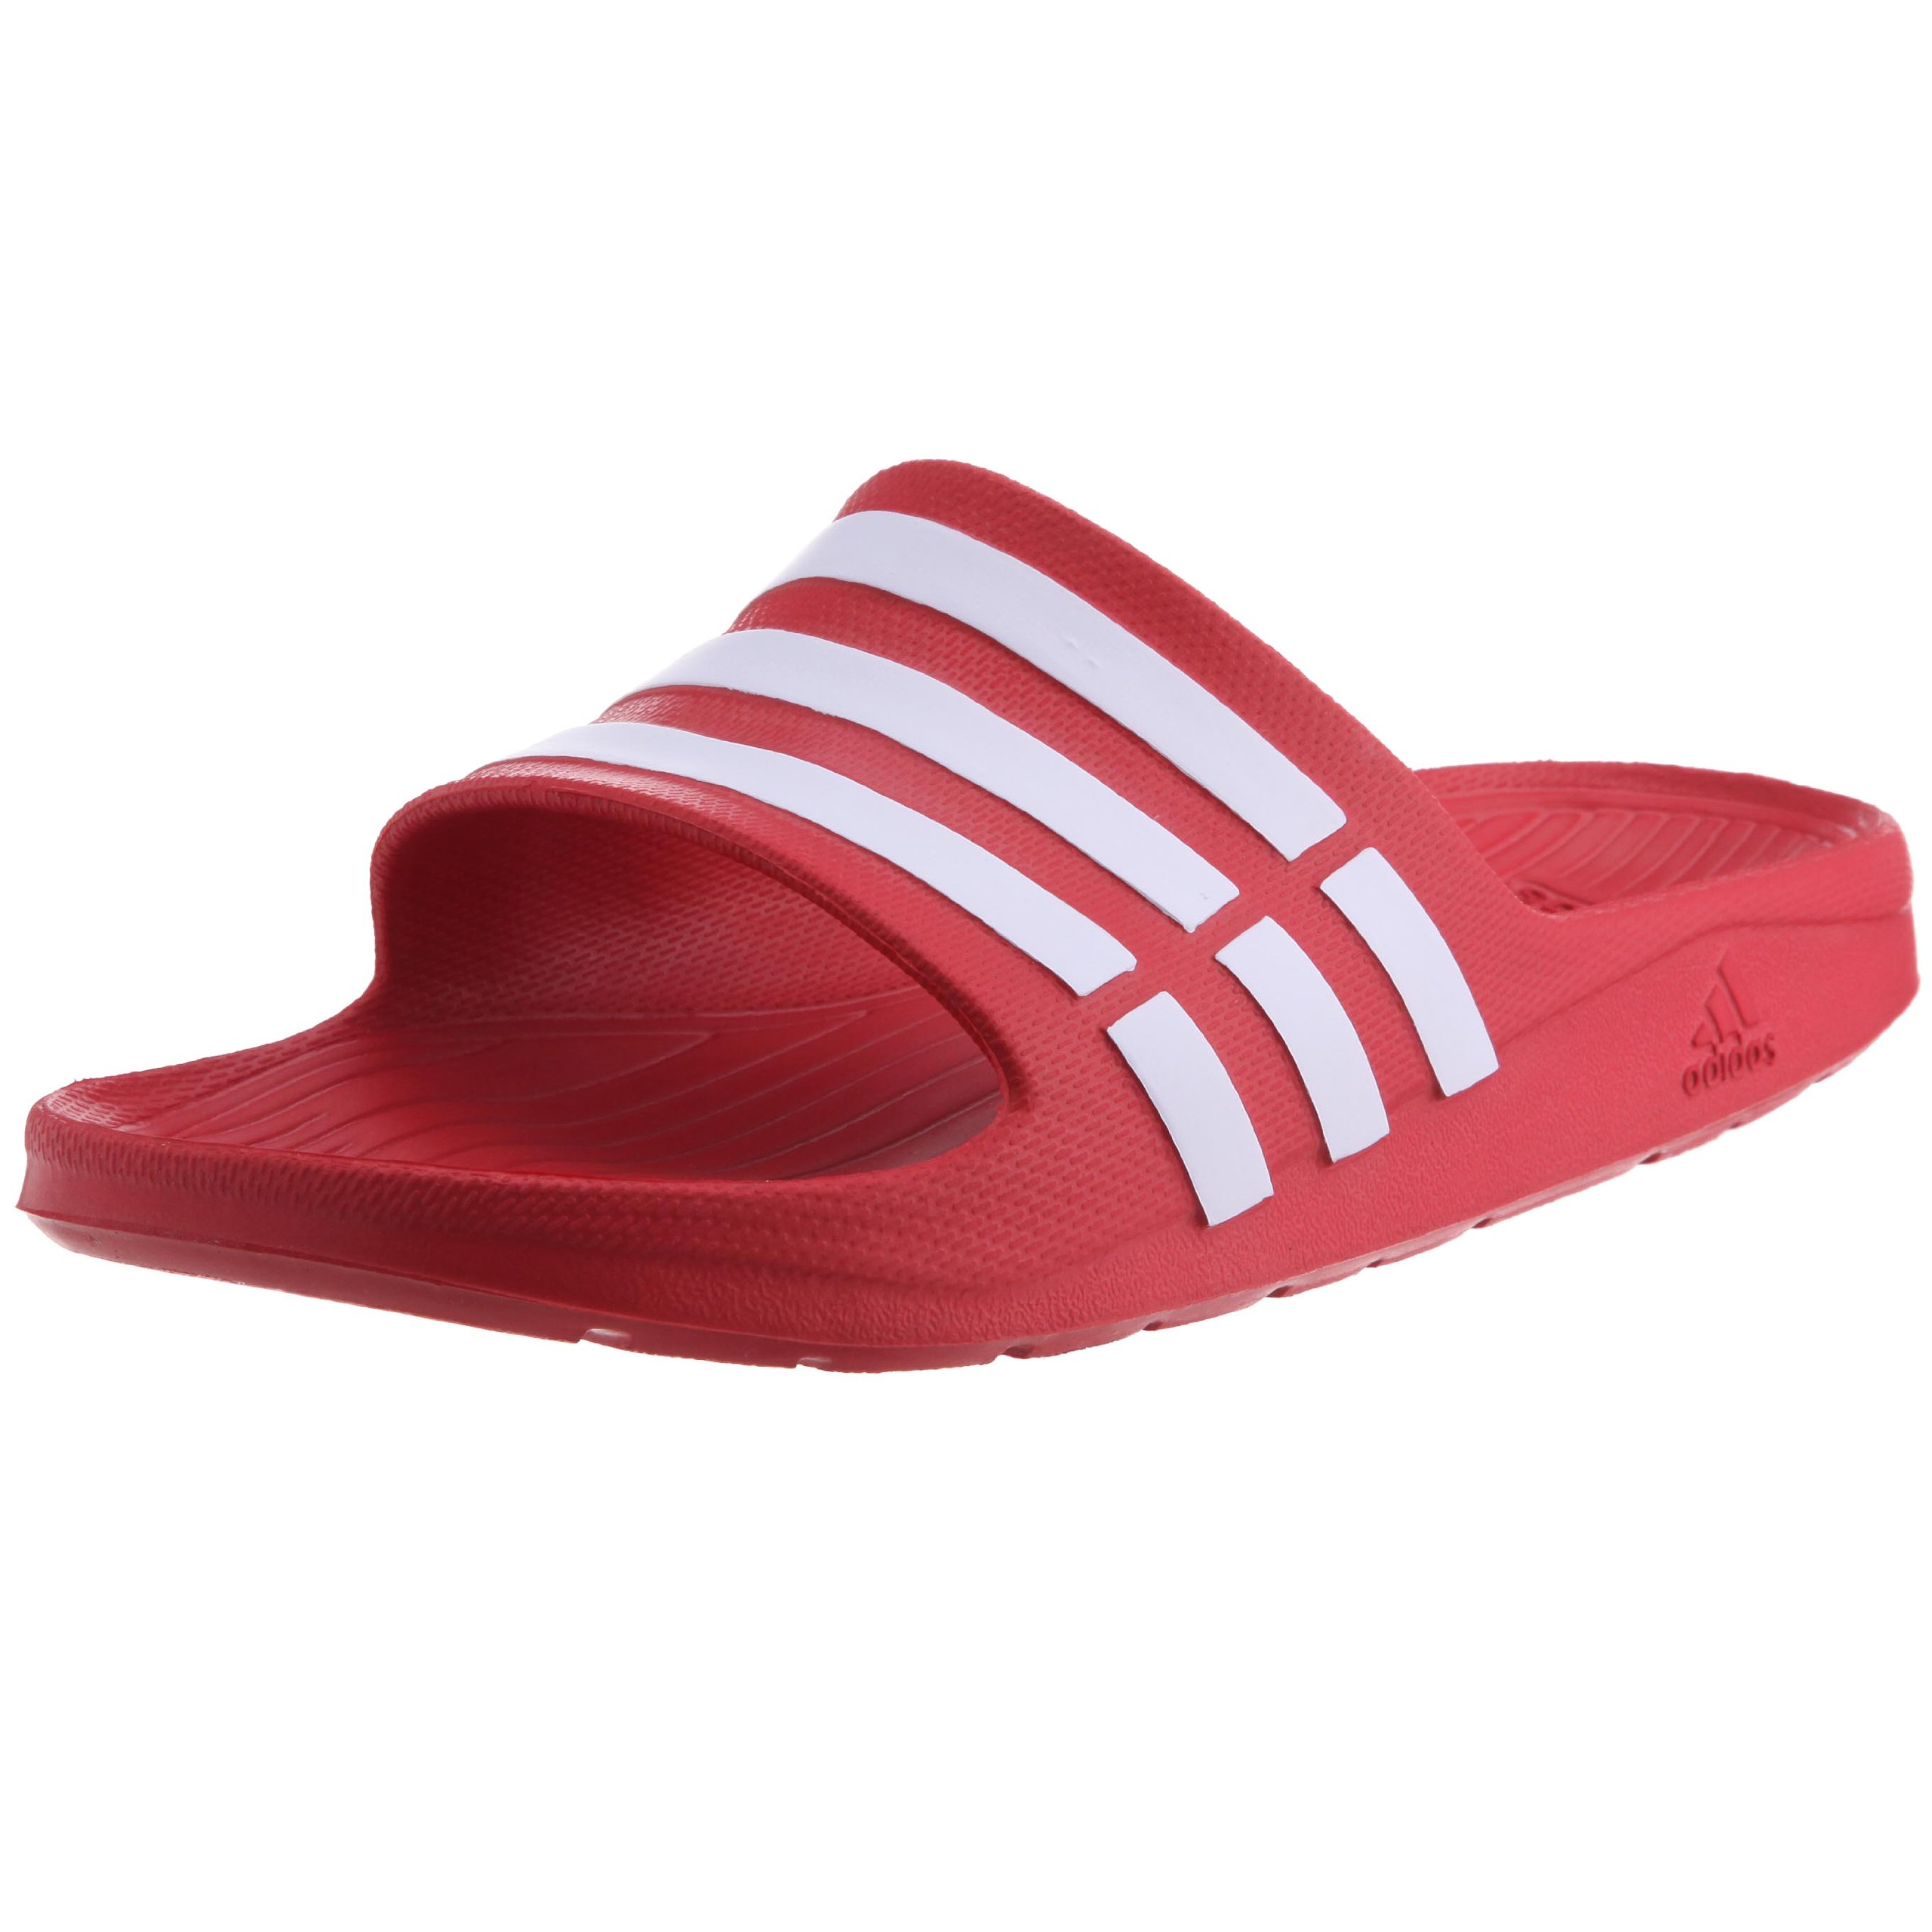 c9784007a7c7 Galleon - Adidas Unisex Adult Duramo Slide Open Toe Sandals